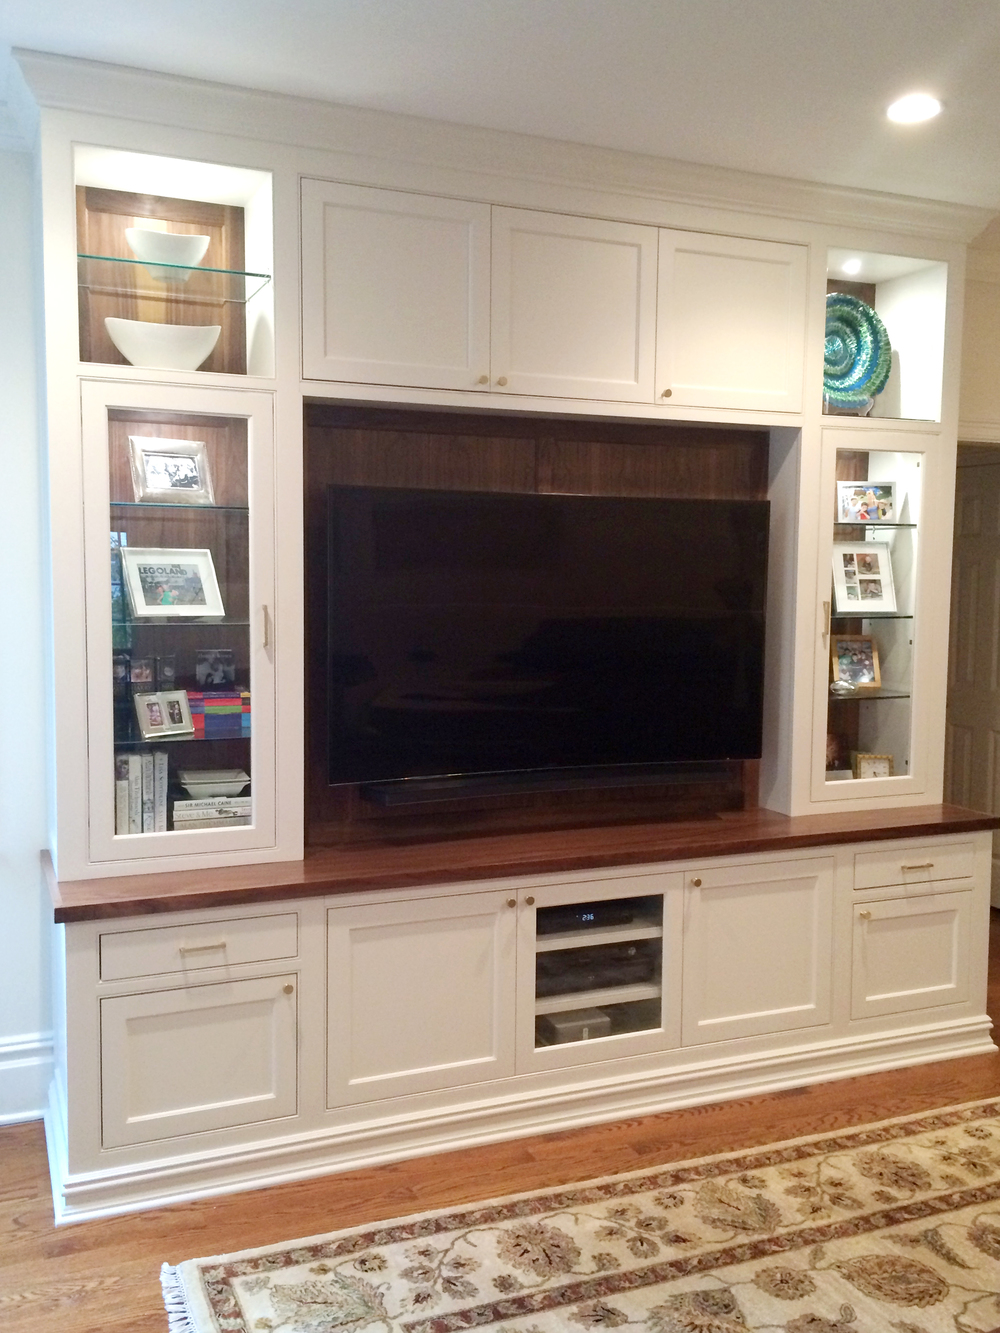 KAM DESIGN_Custom Millwork_White Painted_Walnut Top_Walnut Back Panels_Glass Cabinets_Pin Lights_Scarsdale NY Family Room_2016_web.jpg